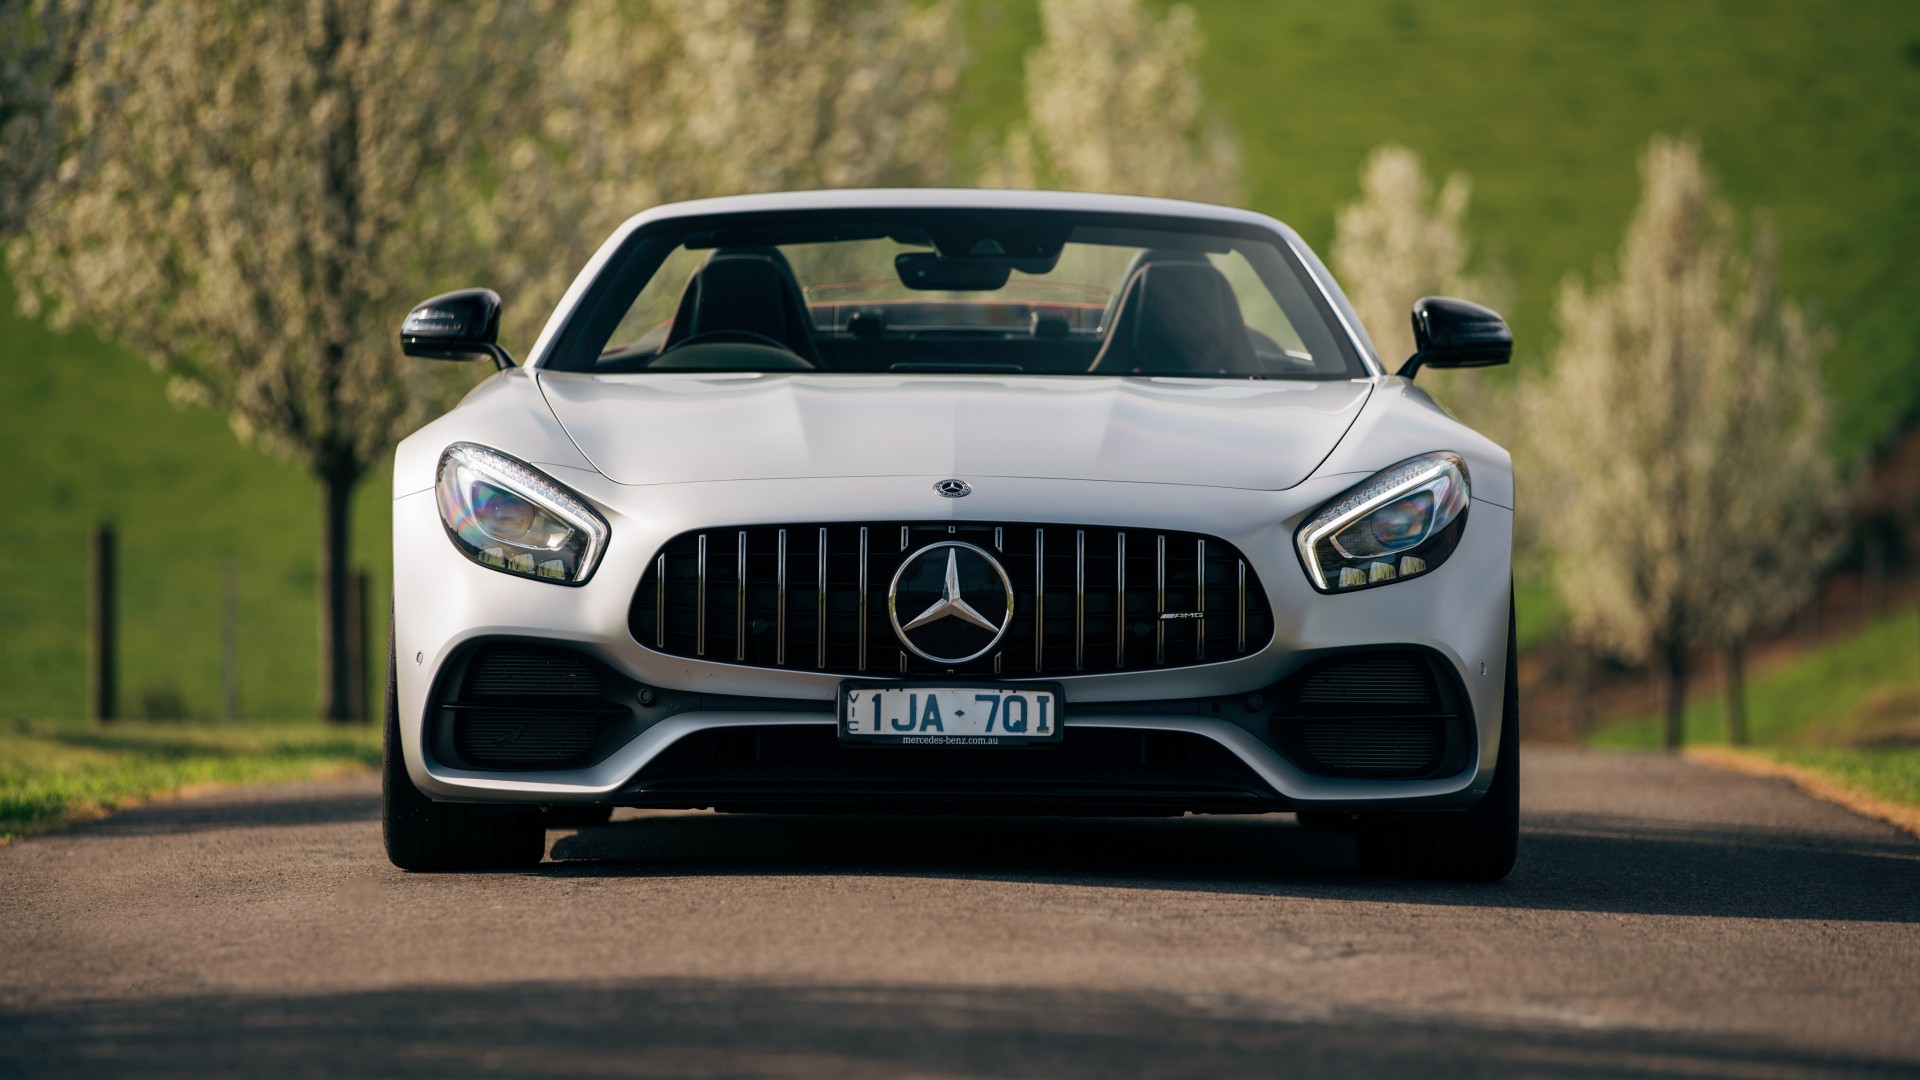 mercedes amg gt c roadster 2018 4k 2 wallpaper